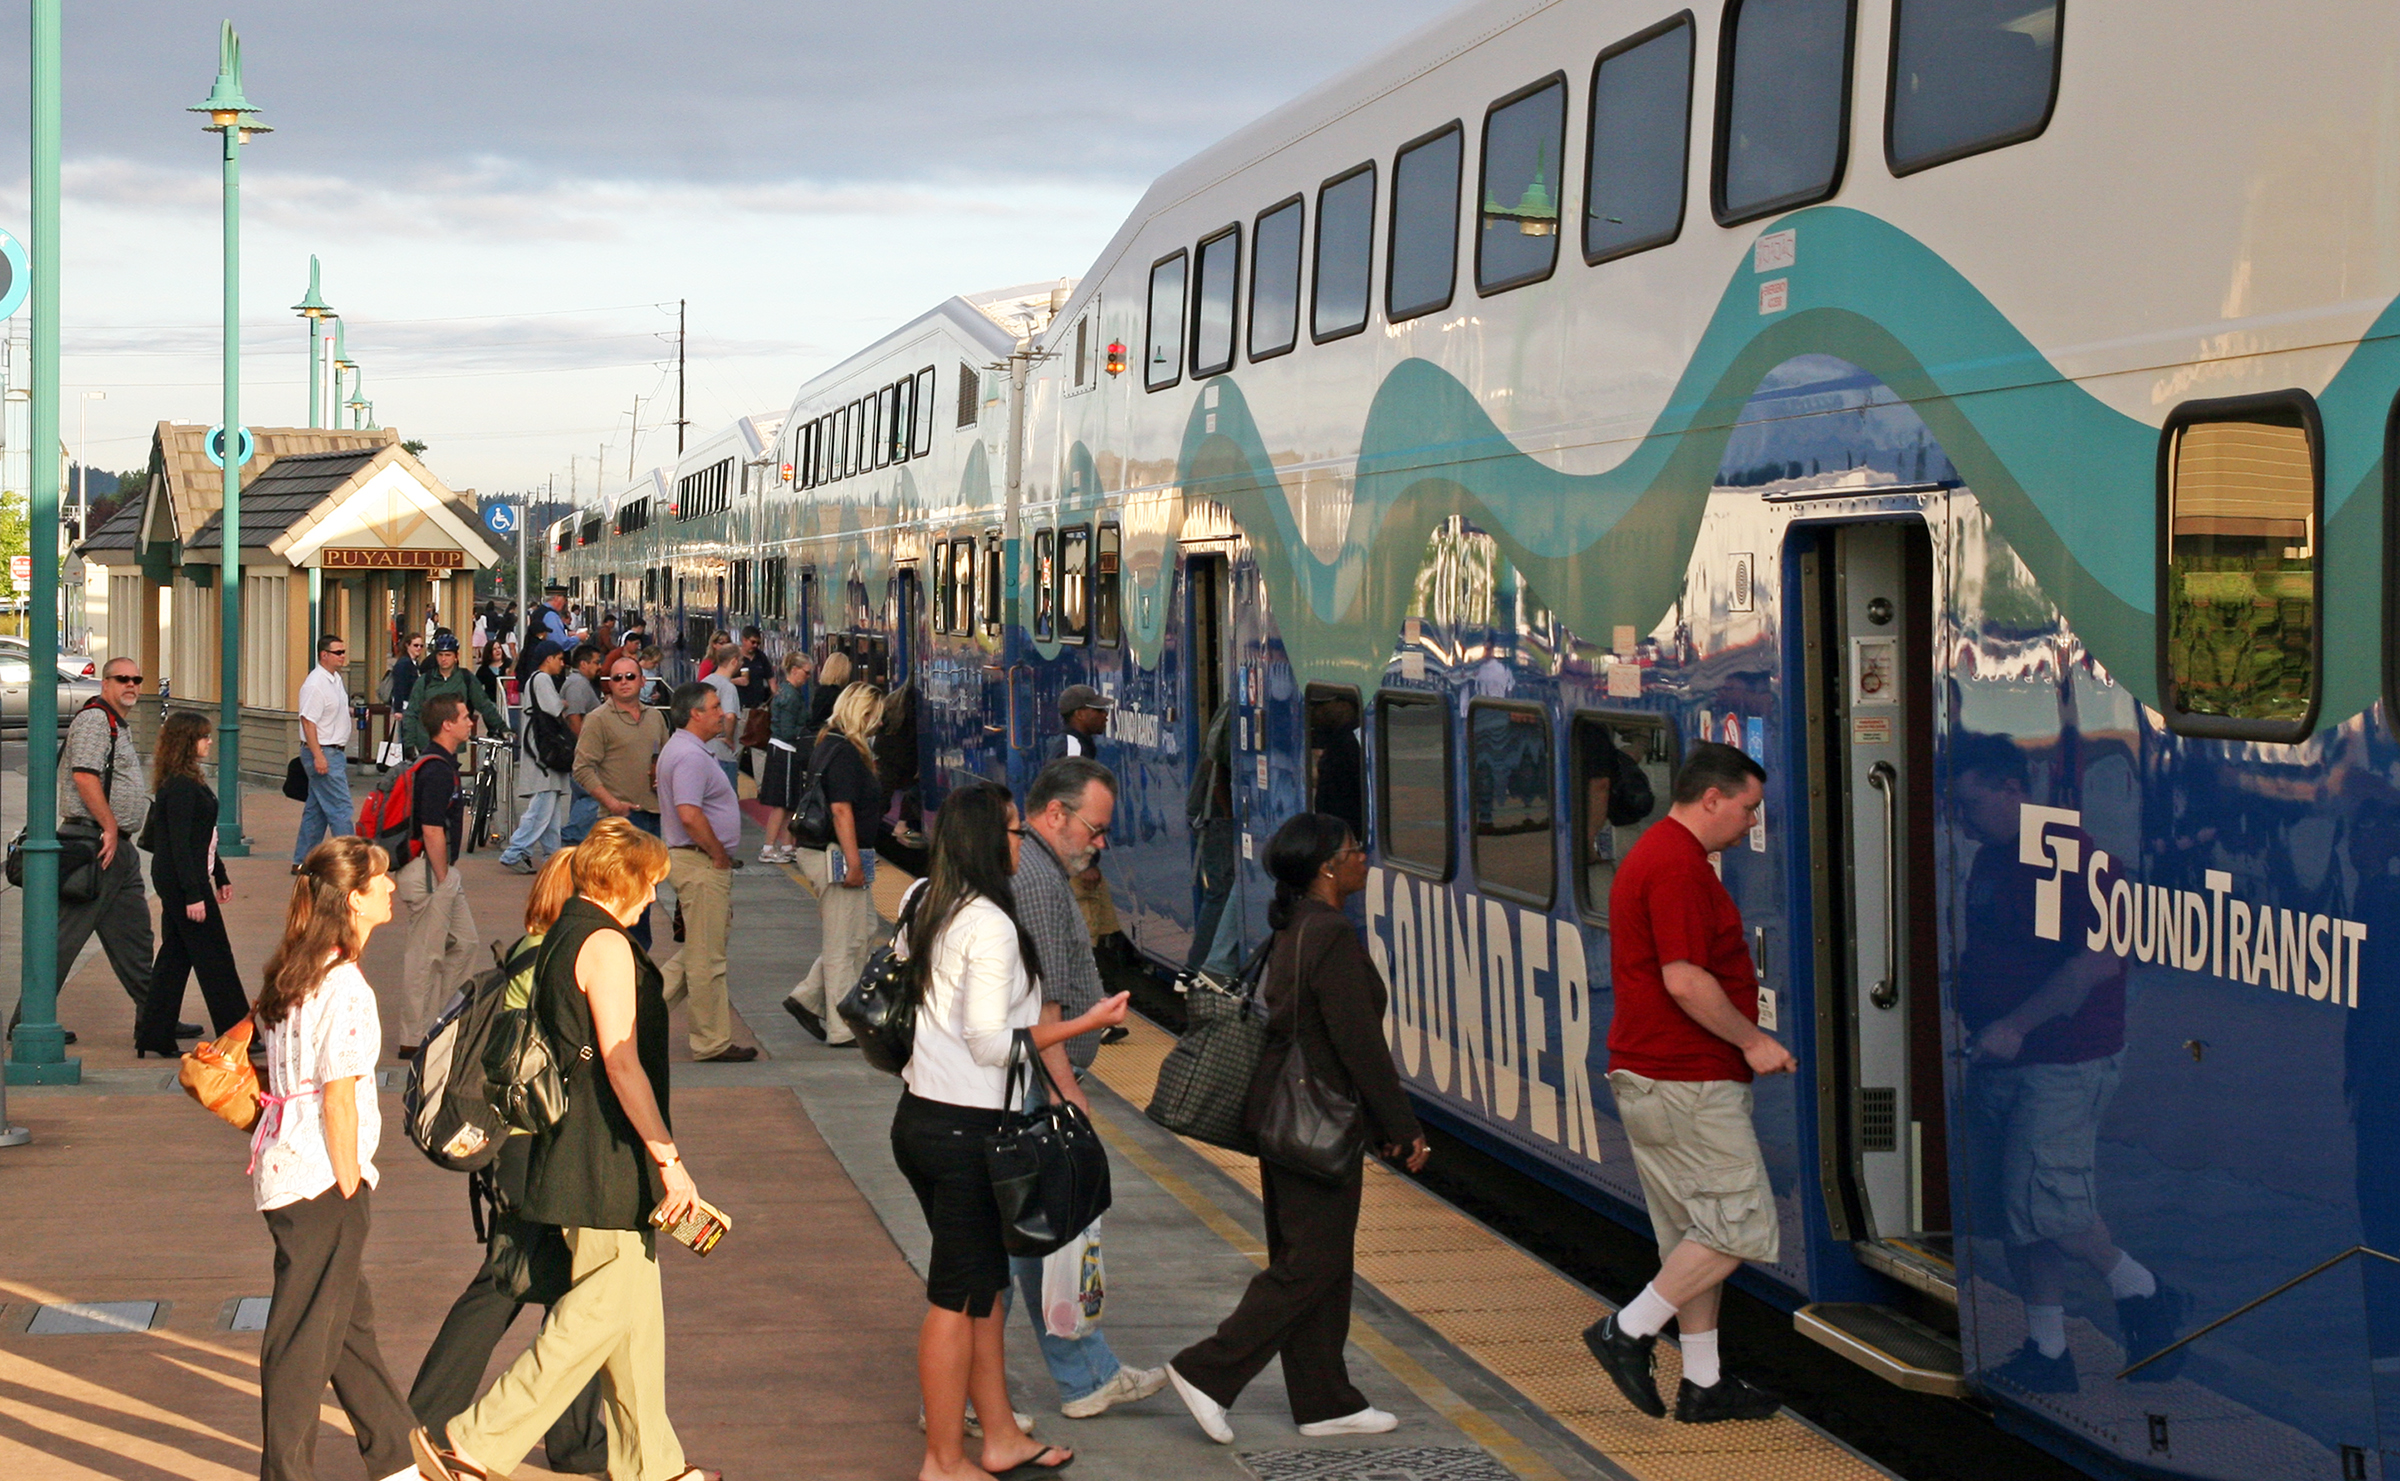 Image of Puyallup Station riders boarding